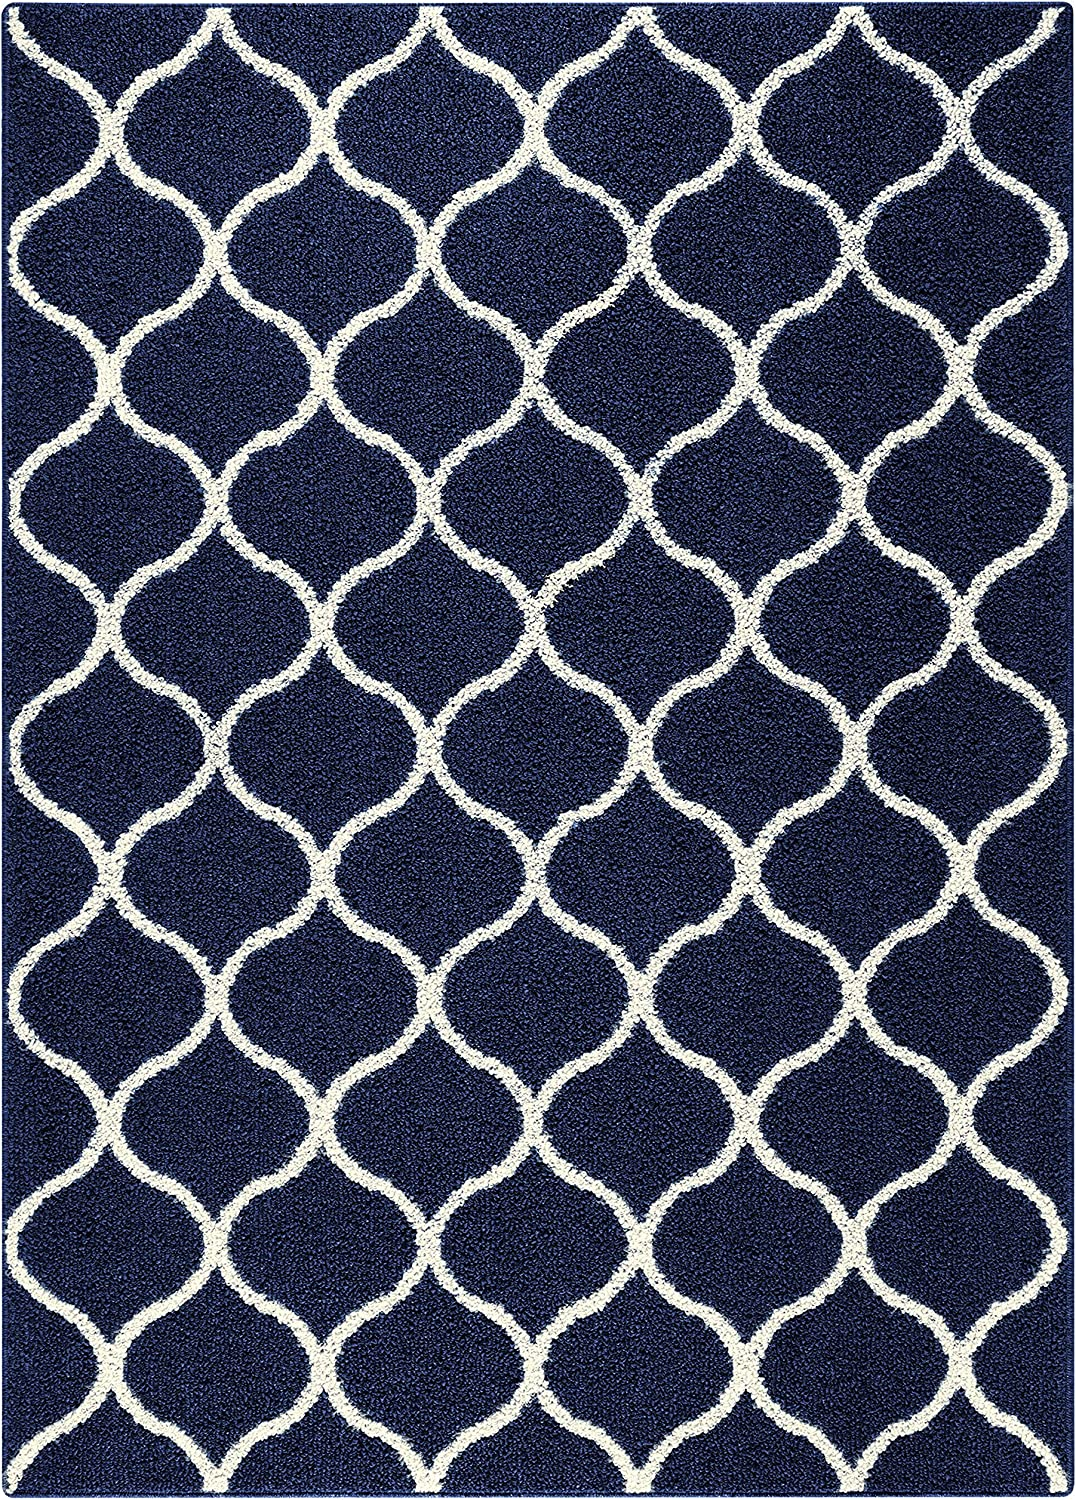 Maples Rugs Rebecca Contemporary Area depot Living for Room Free Shipping New Bed